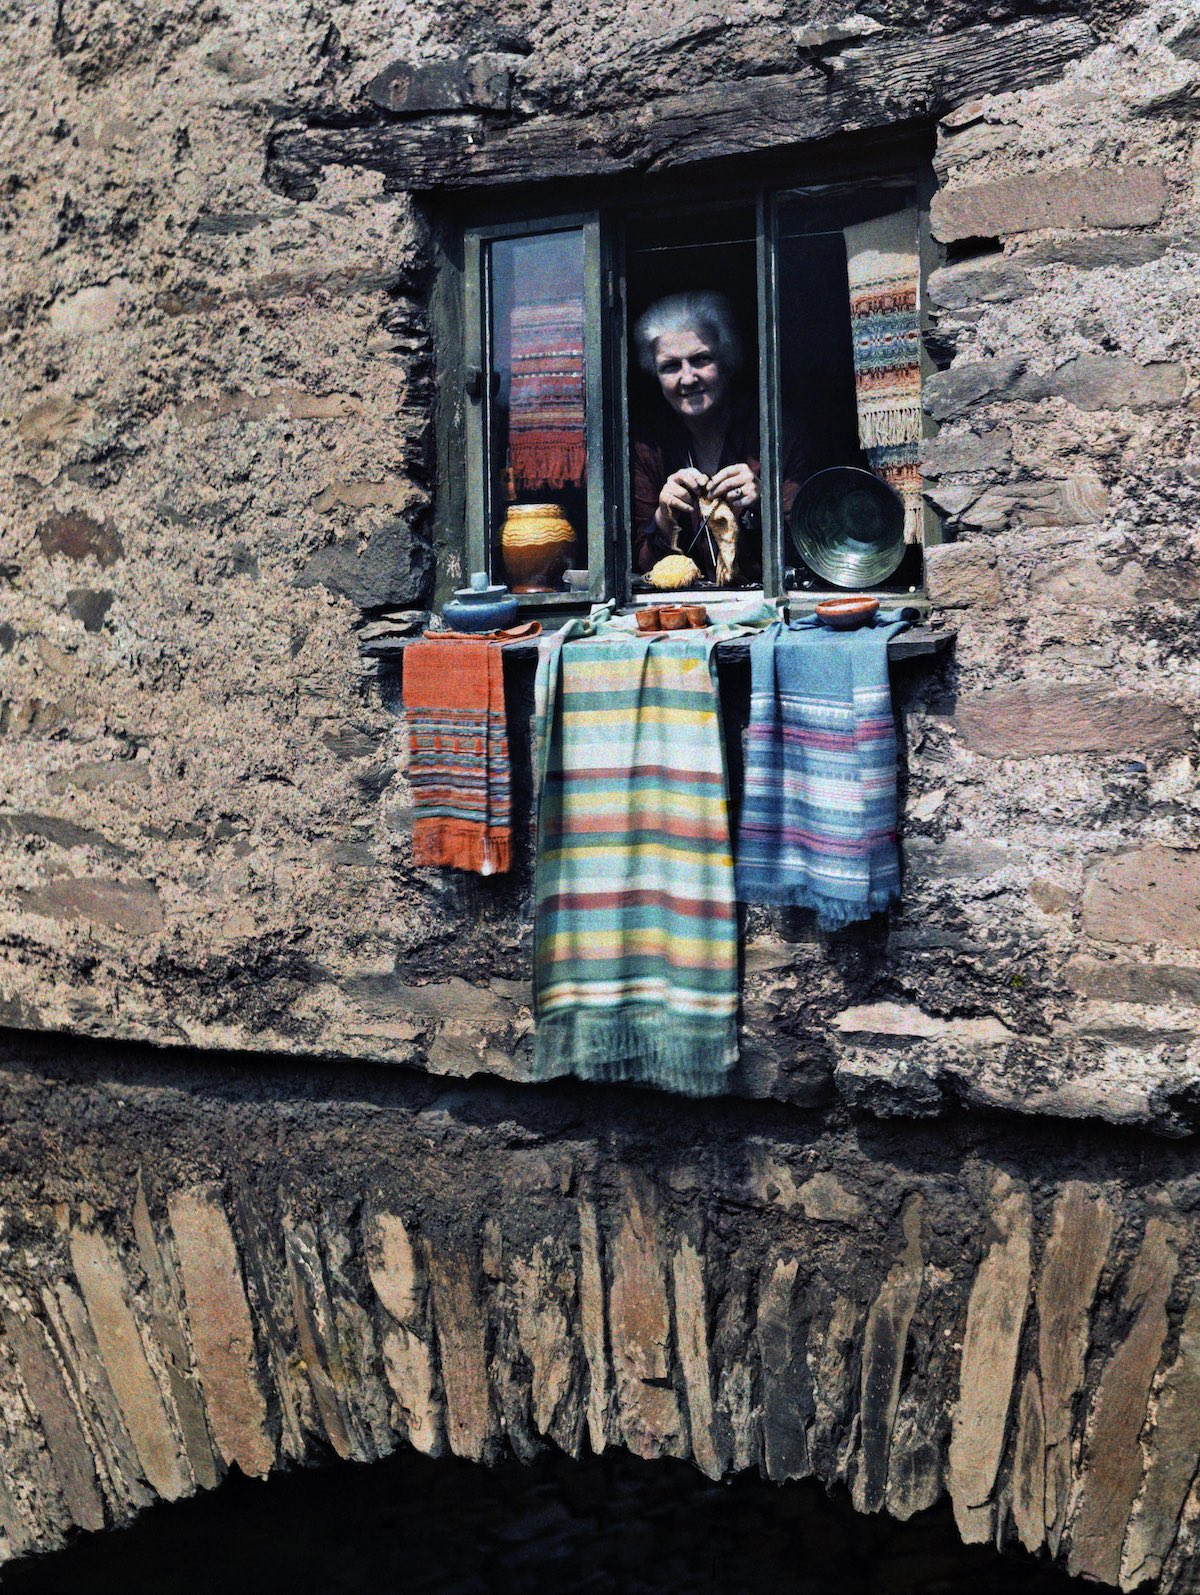 A woman sticks her head out of her bridge house window, in Ambleside, Lake District, Cumbria, England. Image: Clifton R. Adams/National Geographic Creative/Corbis